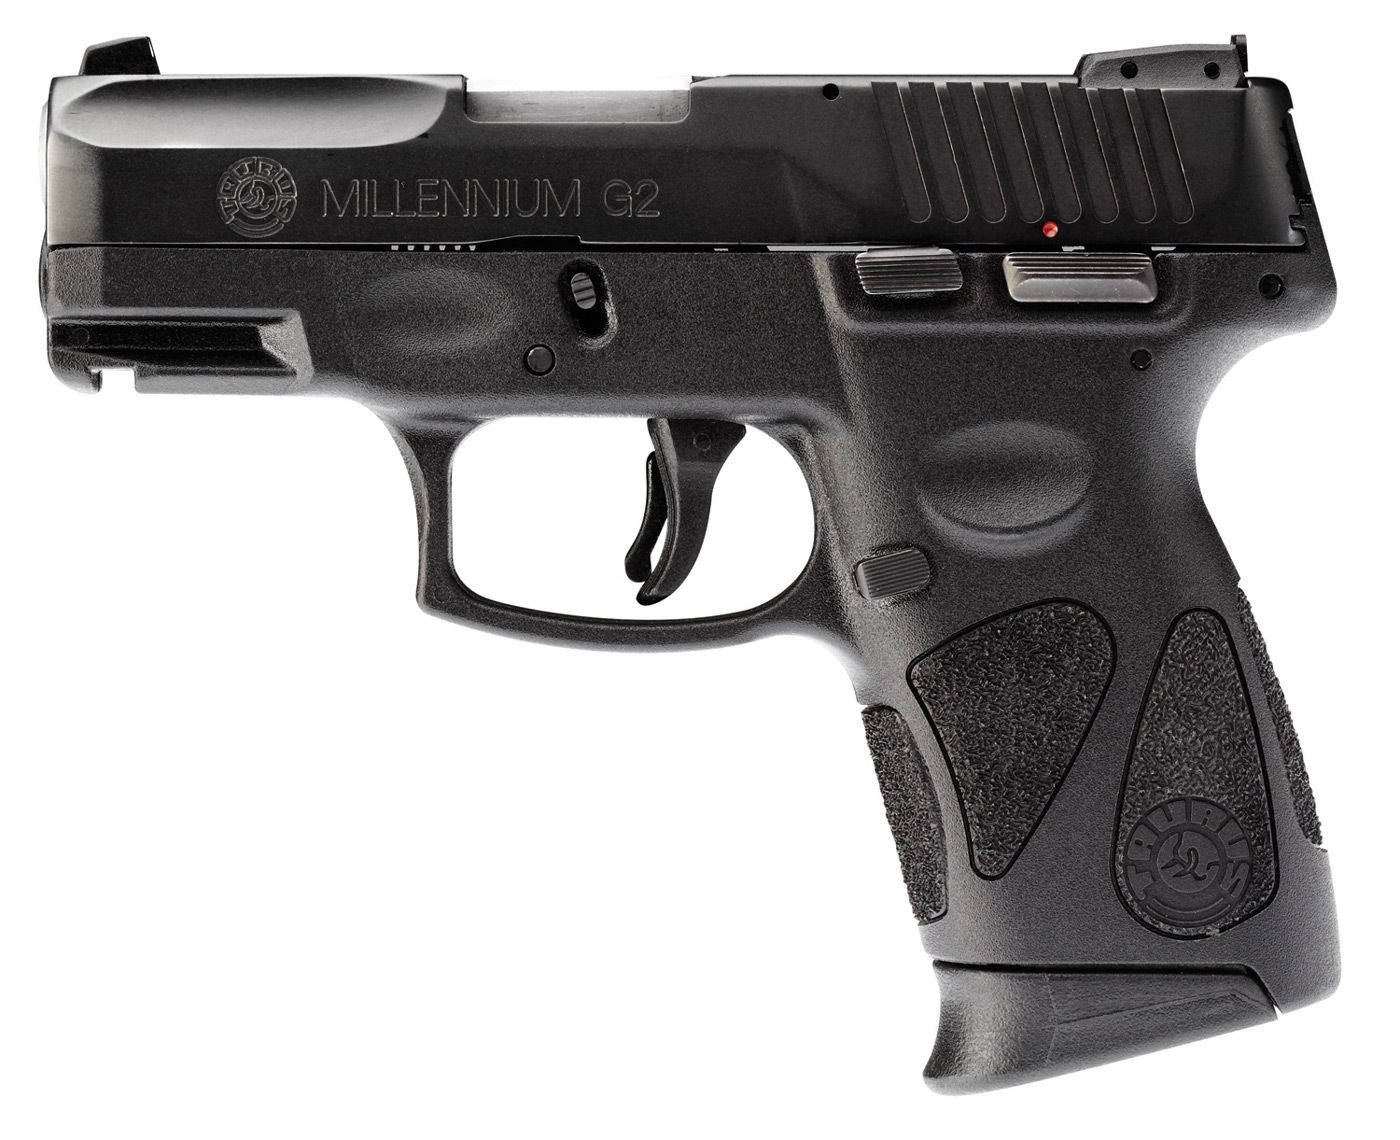 Top 10 Best Selling Concealed Carry Handguns Hand guns